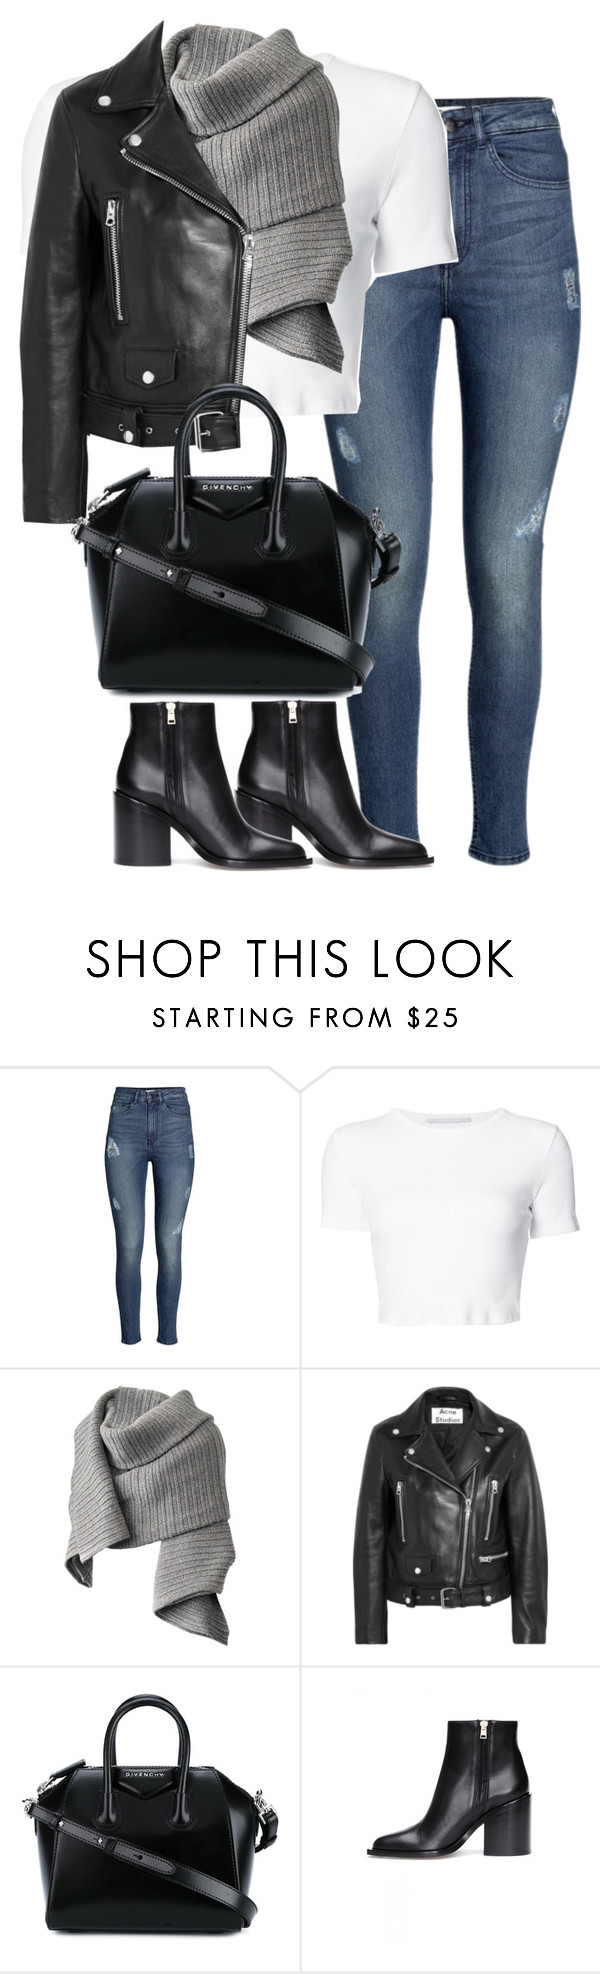 """""""Untitled #4366"""" by maddie1128 ❤ liked on Polyvore featuring H&M, Rosetta Getty, Acne Studios, Givenchy and Marni"""